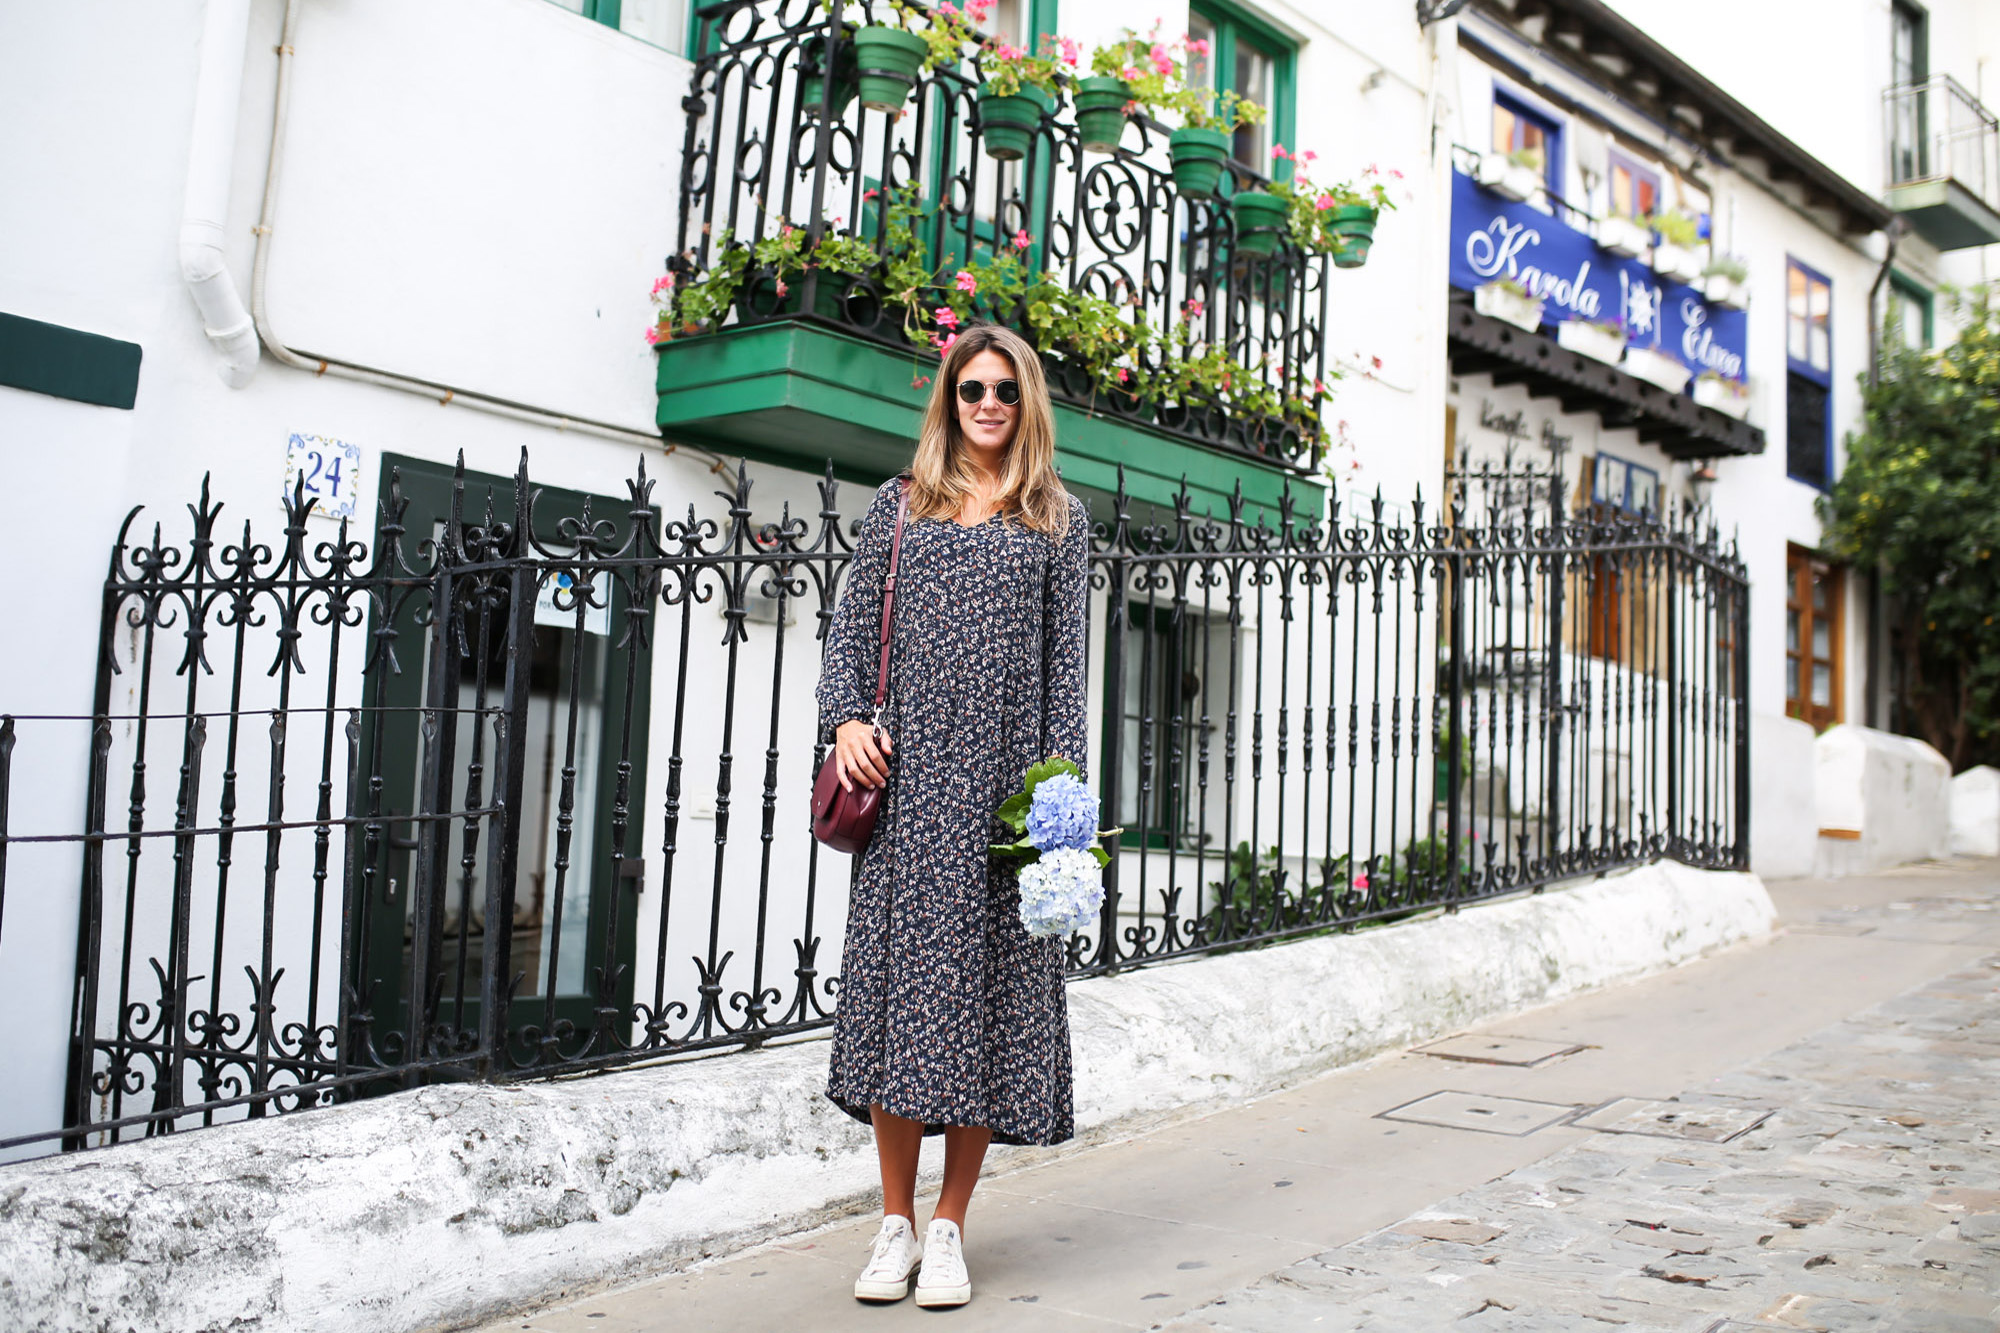 Clochet_streetstyle_fashionblogger_eseoese_flowerprintmididress_converse_americanvintage_pinkknit-8